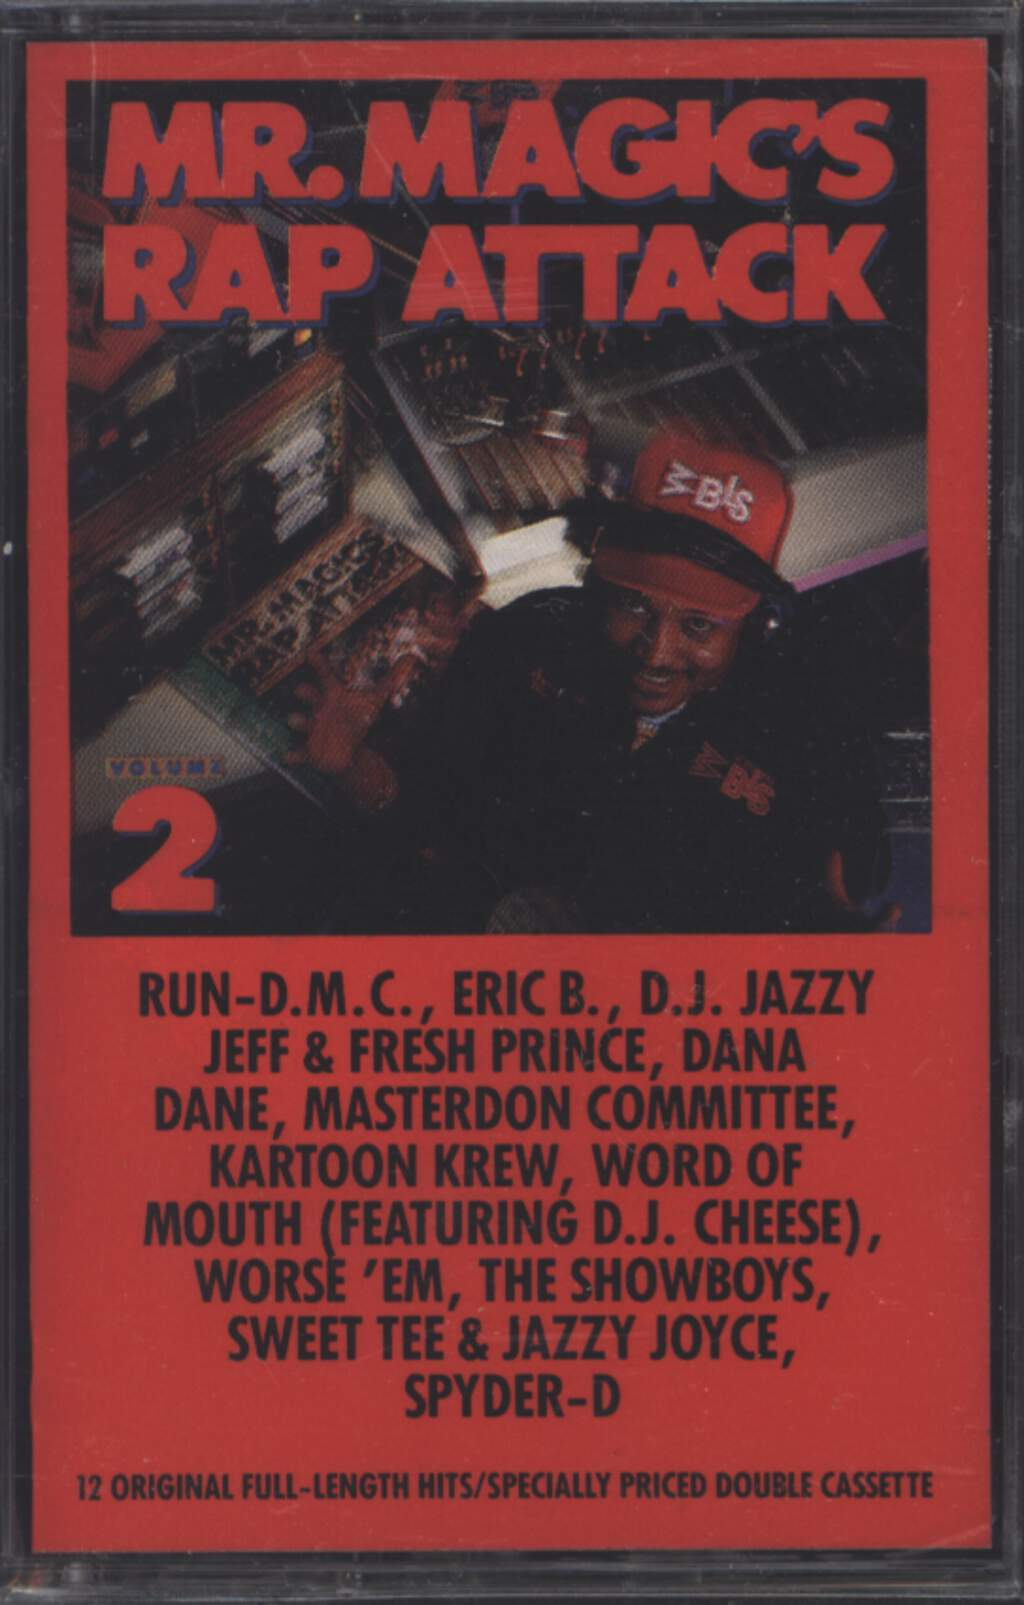 Mr. Magic: Mr. Magic's Rap Attack Volume 2, Compact Cassette